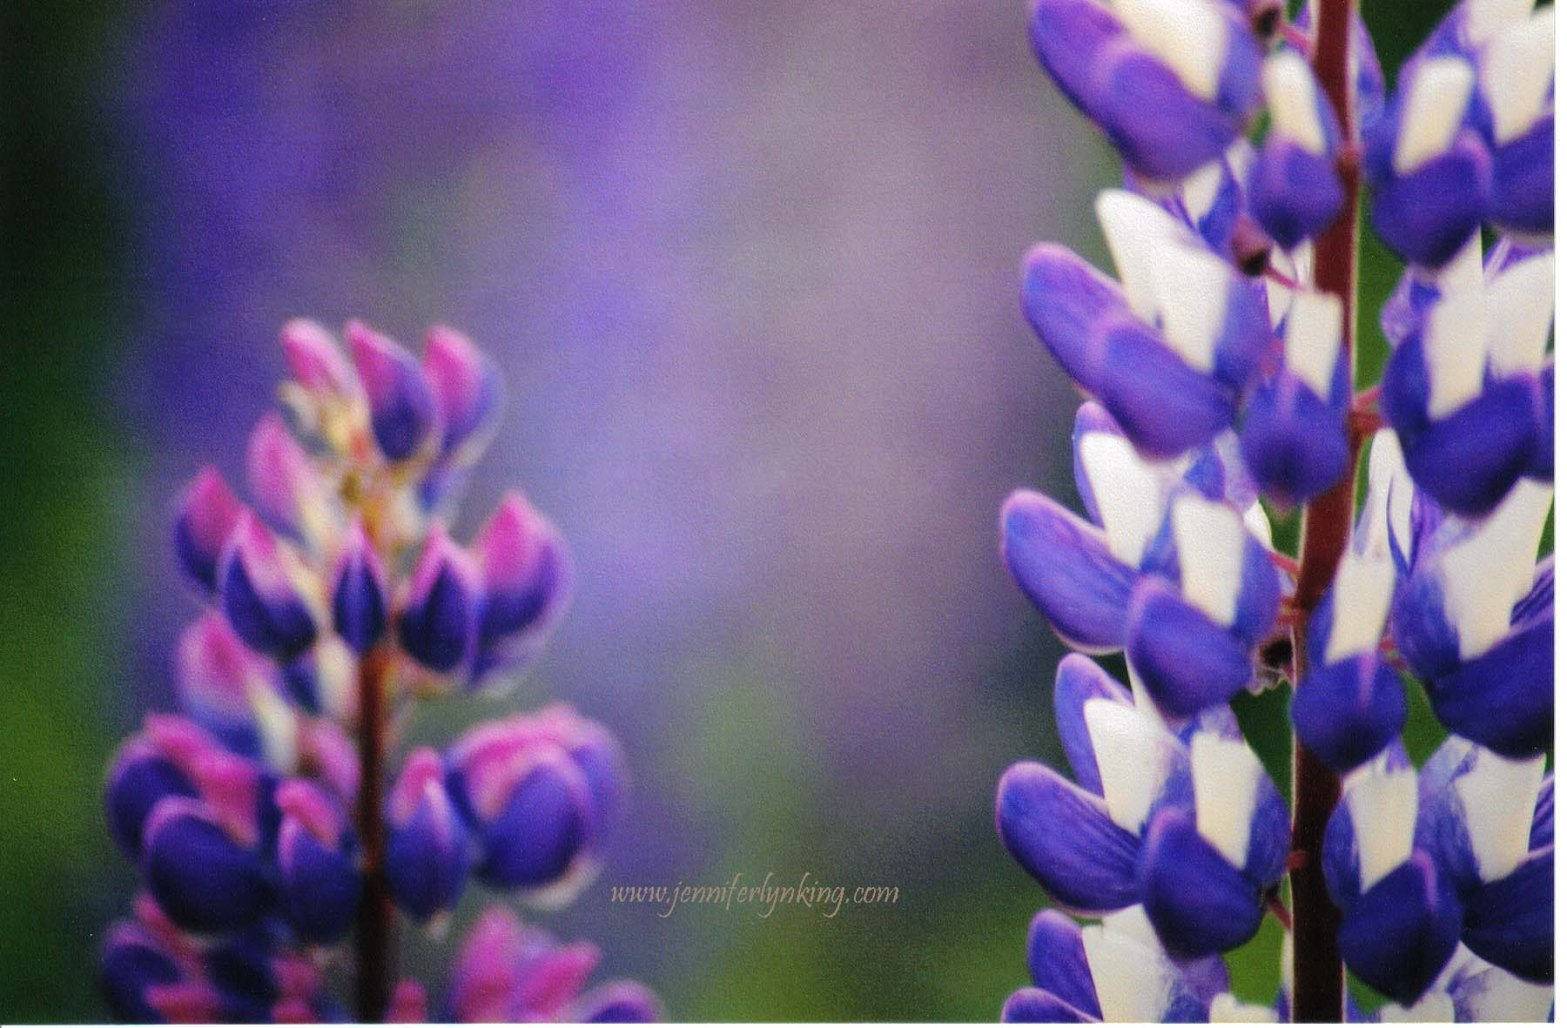 Lupine flowers: the soft colors of tranquility